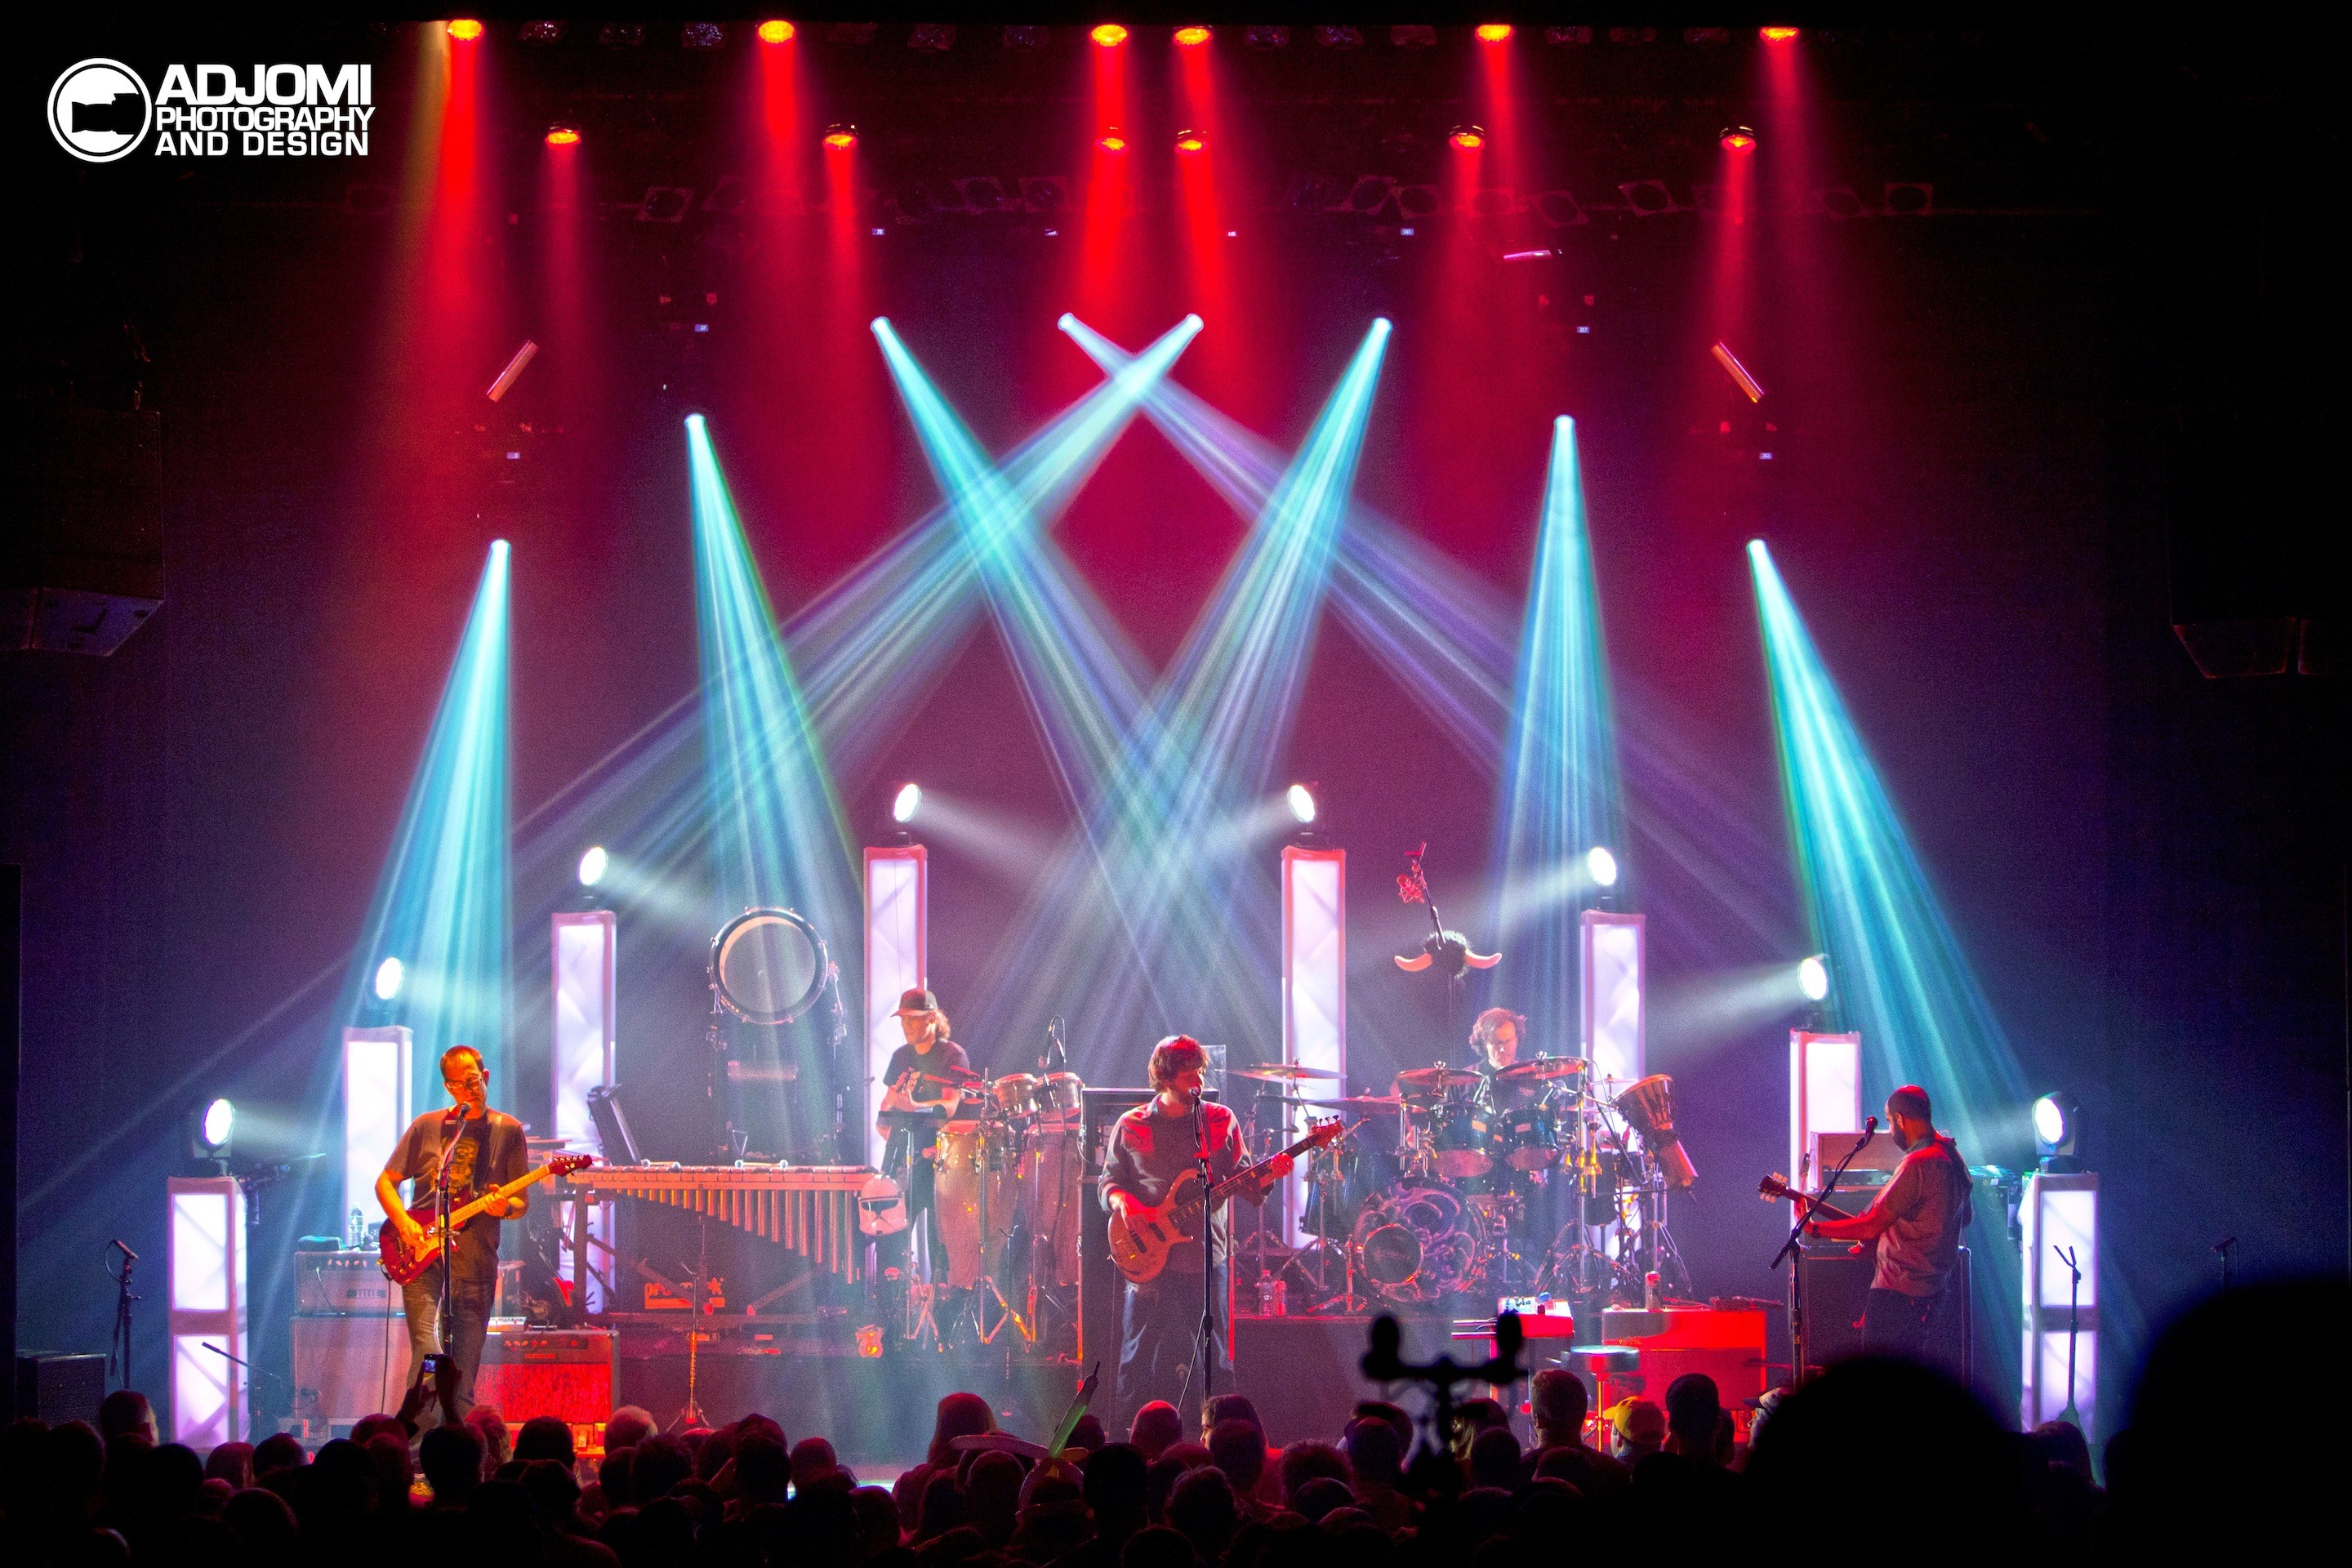 Concept Stage Lighting Design By Richard Pilbrow Feature Light  Recommendation…